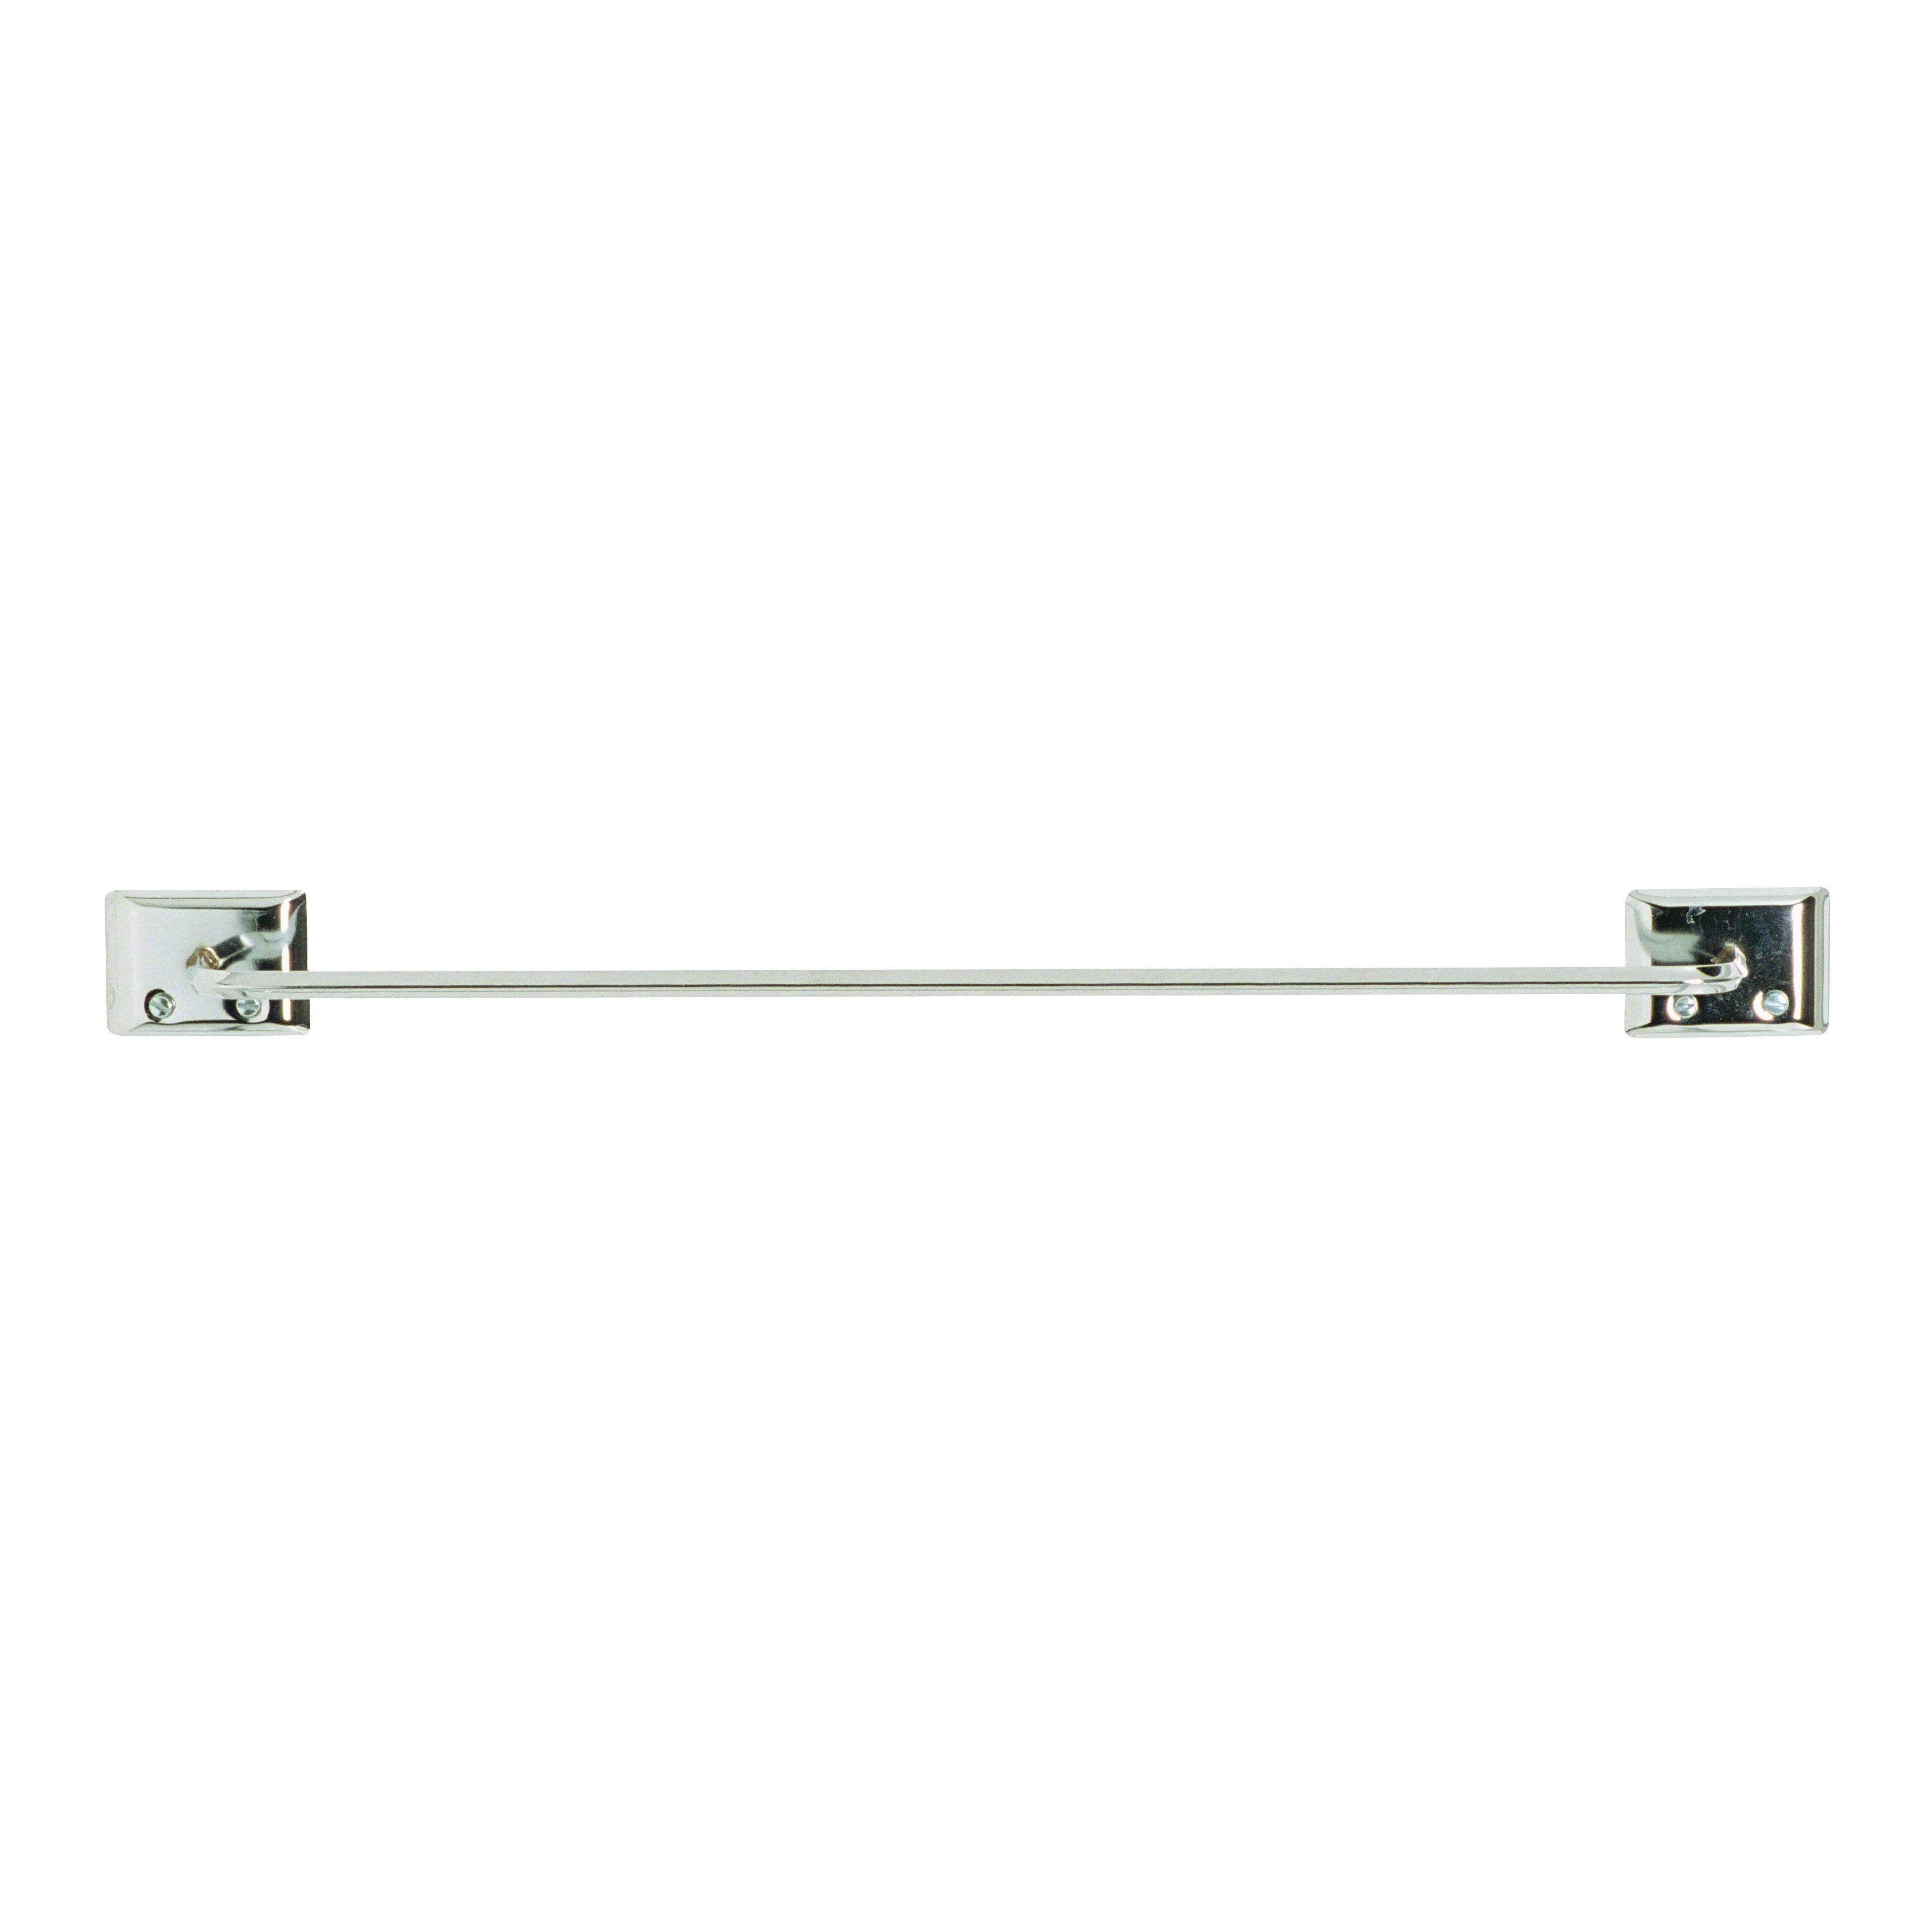 Picture of DECKO 38110 Towel Bar, 18 in L Rod, Steel, Chrome, Surface Mounting